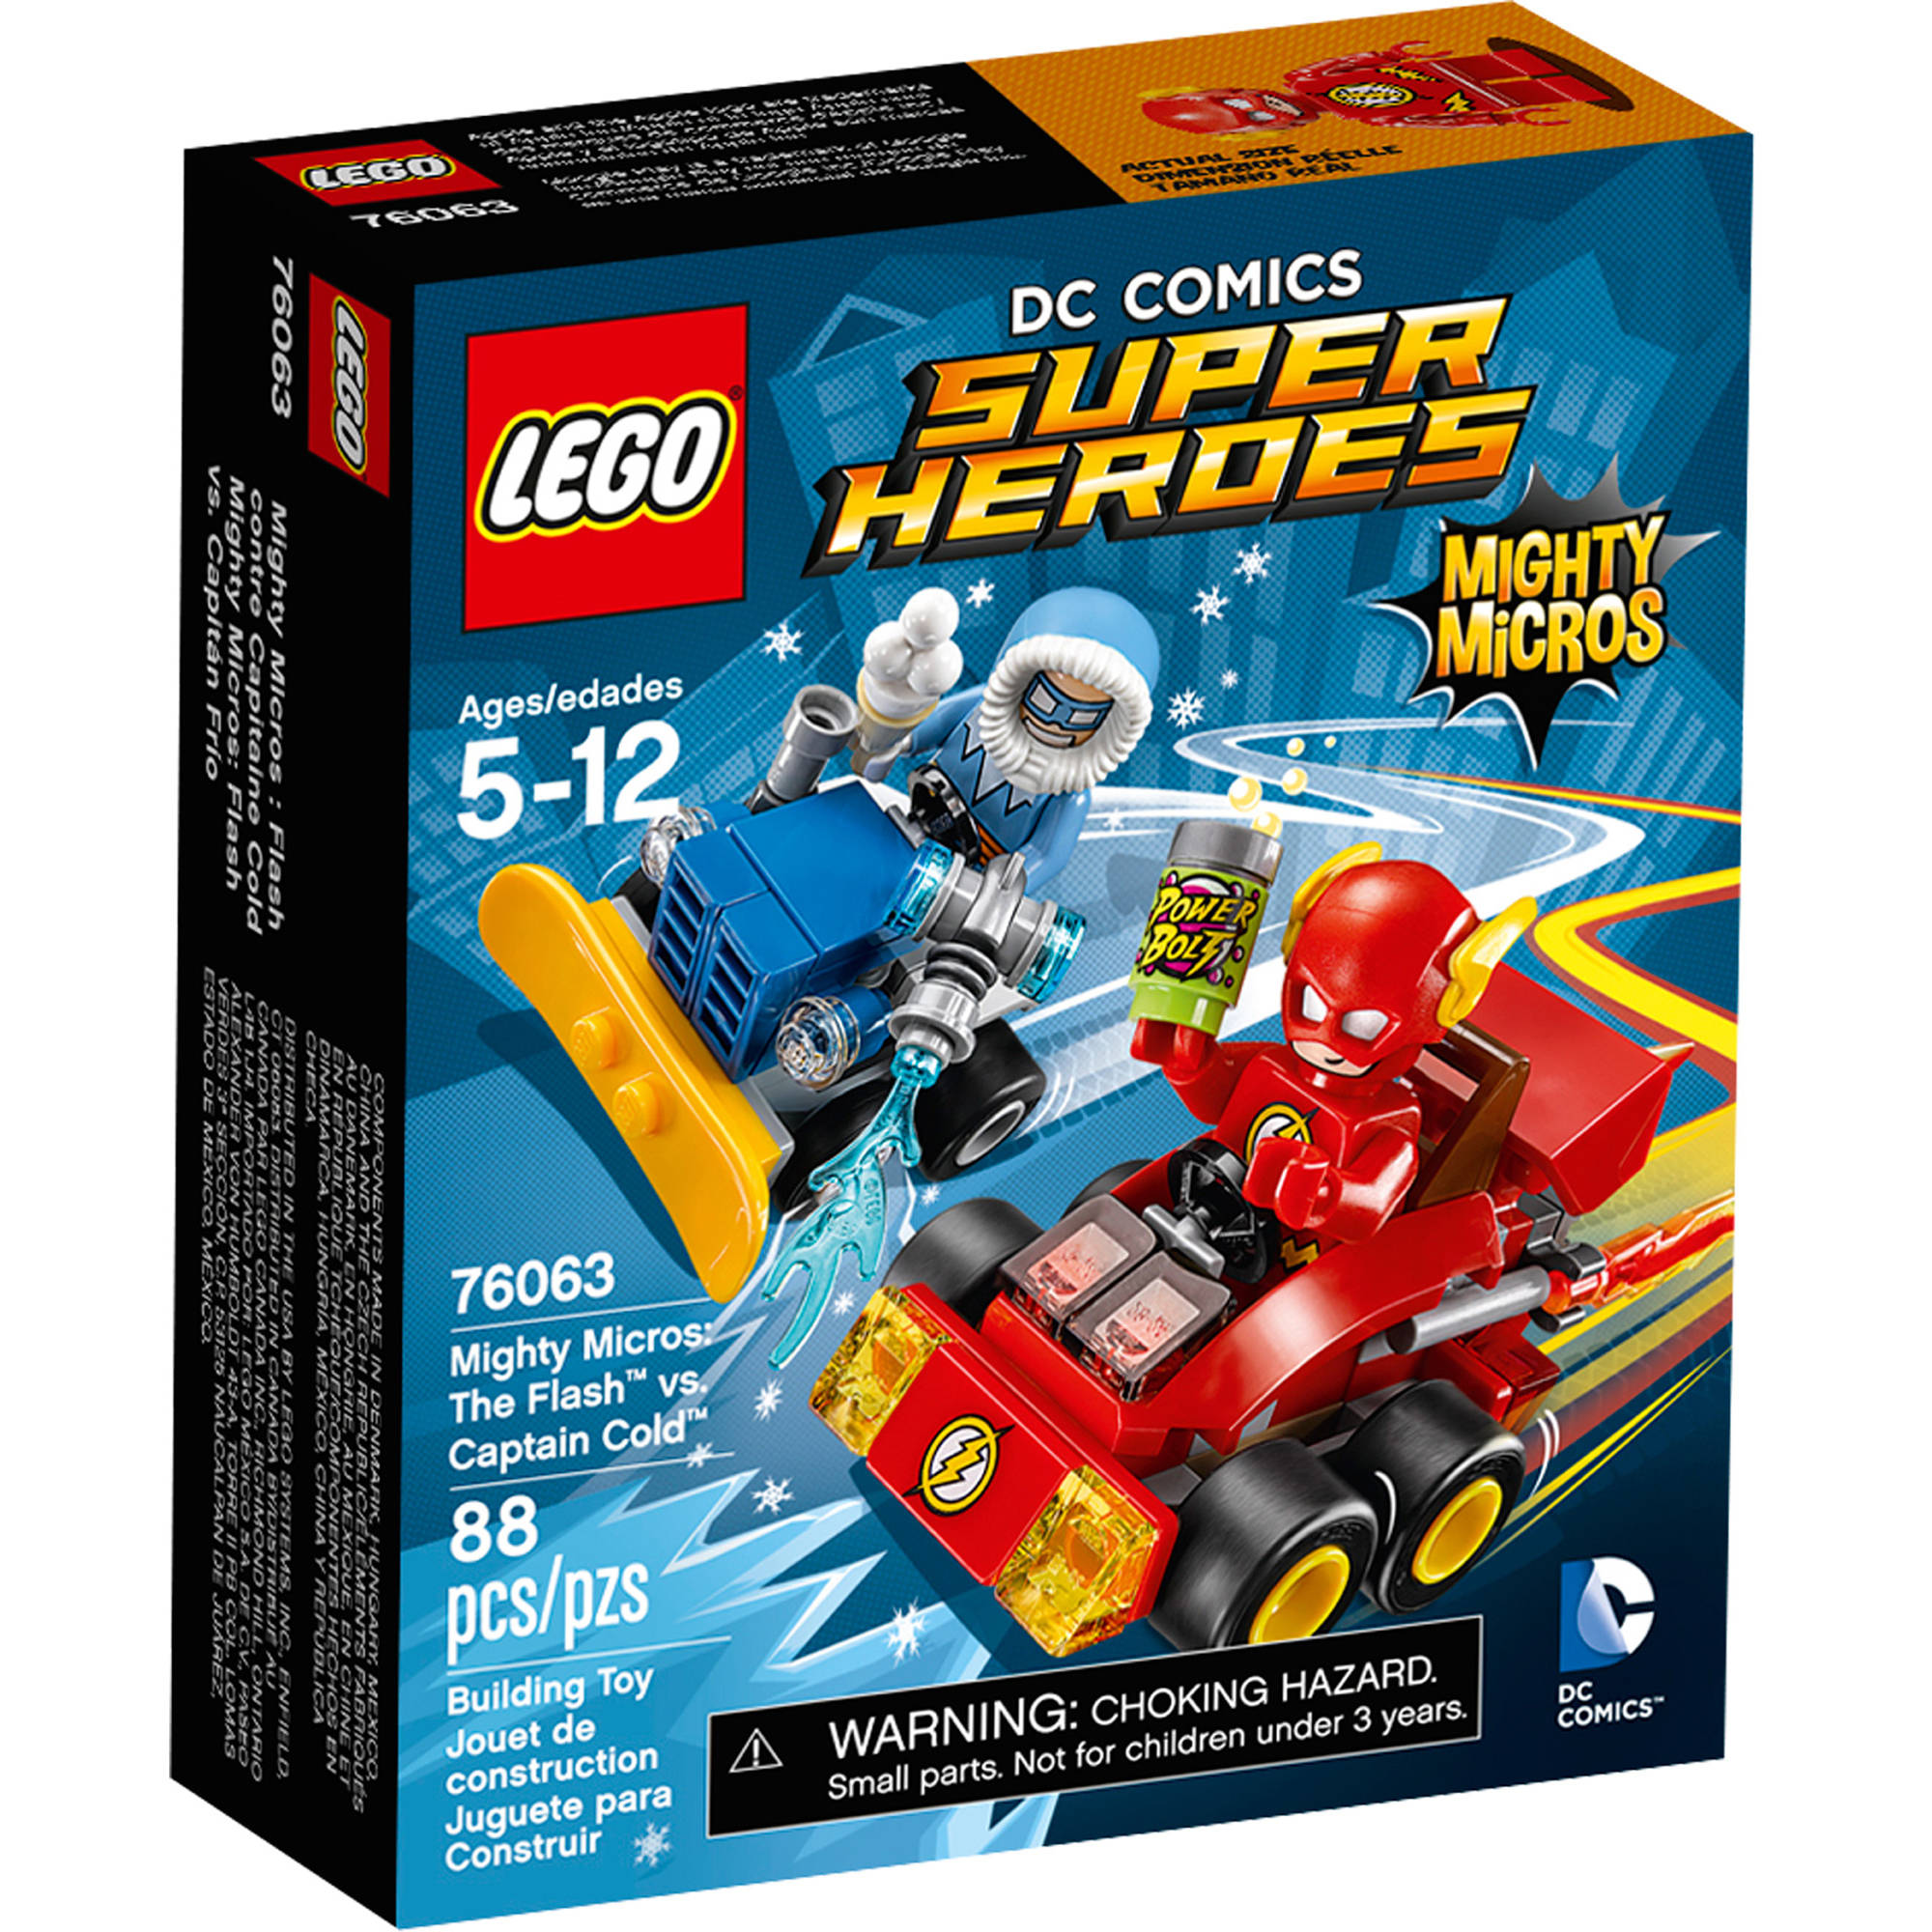 LEGO Super Heroes Mighty Micros: The Flash Vs. Captain Co 76063    Walmart.com